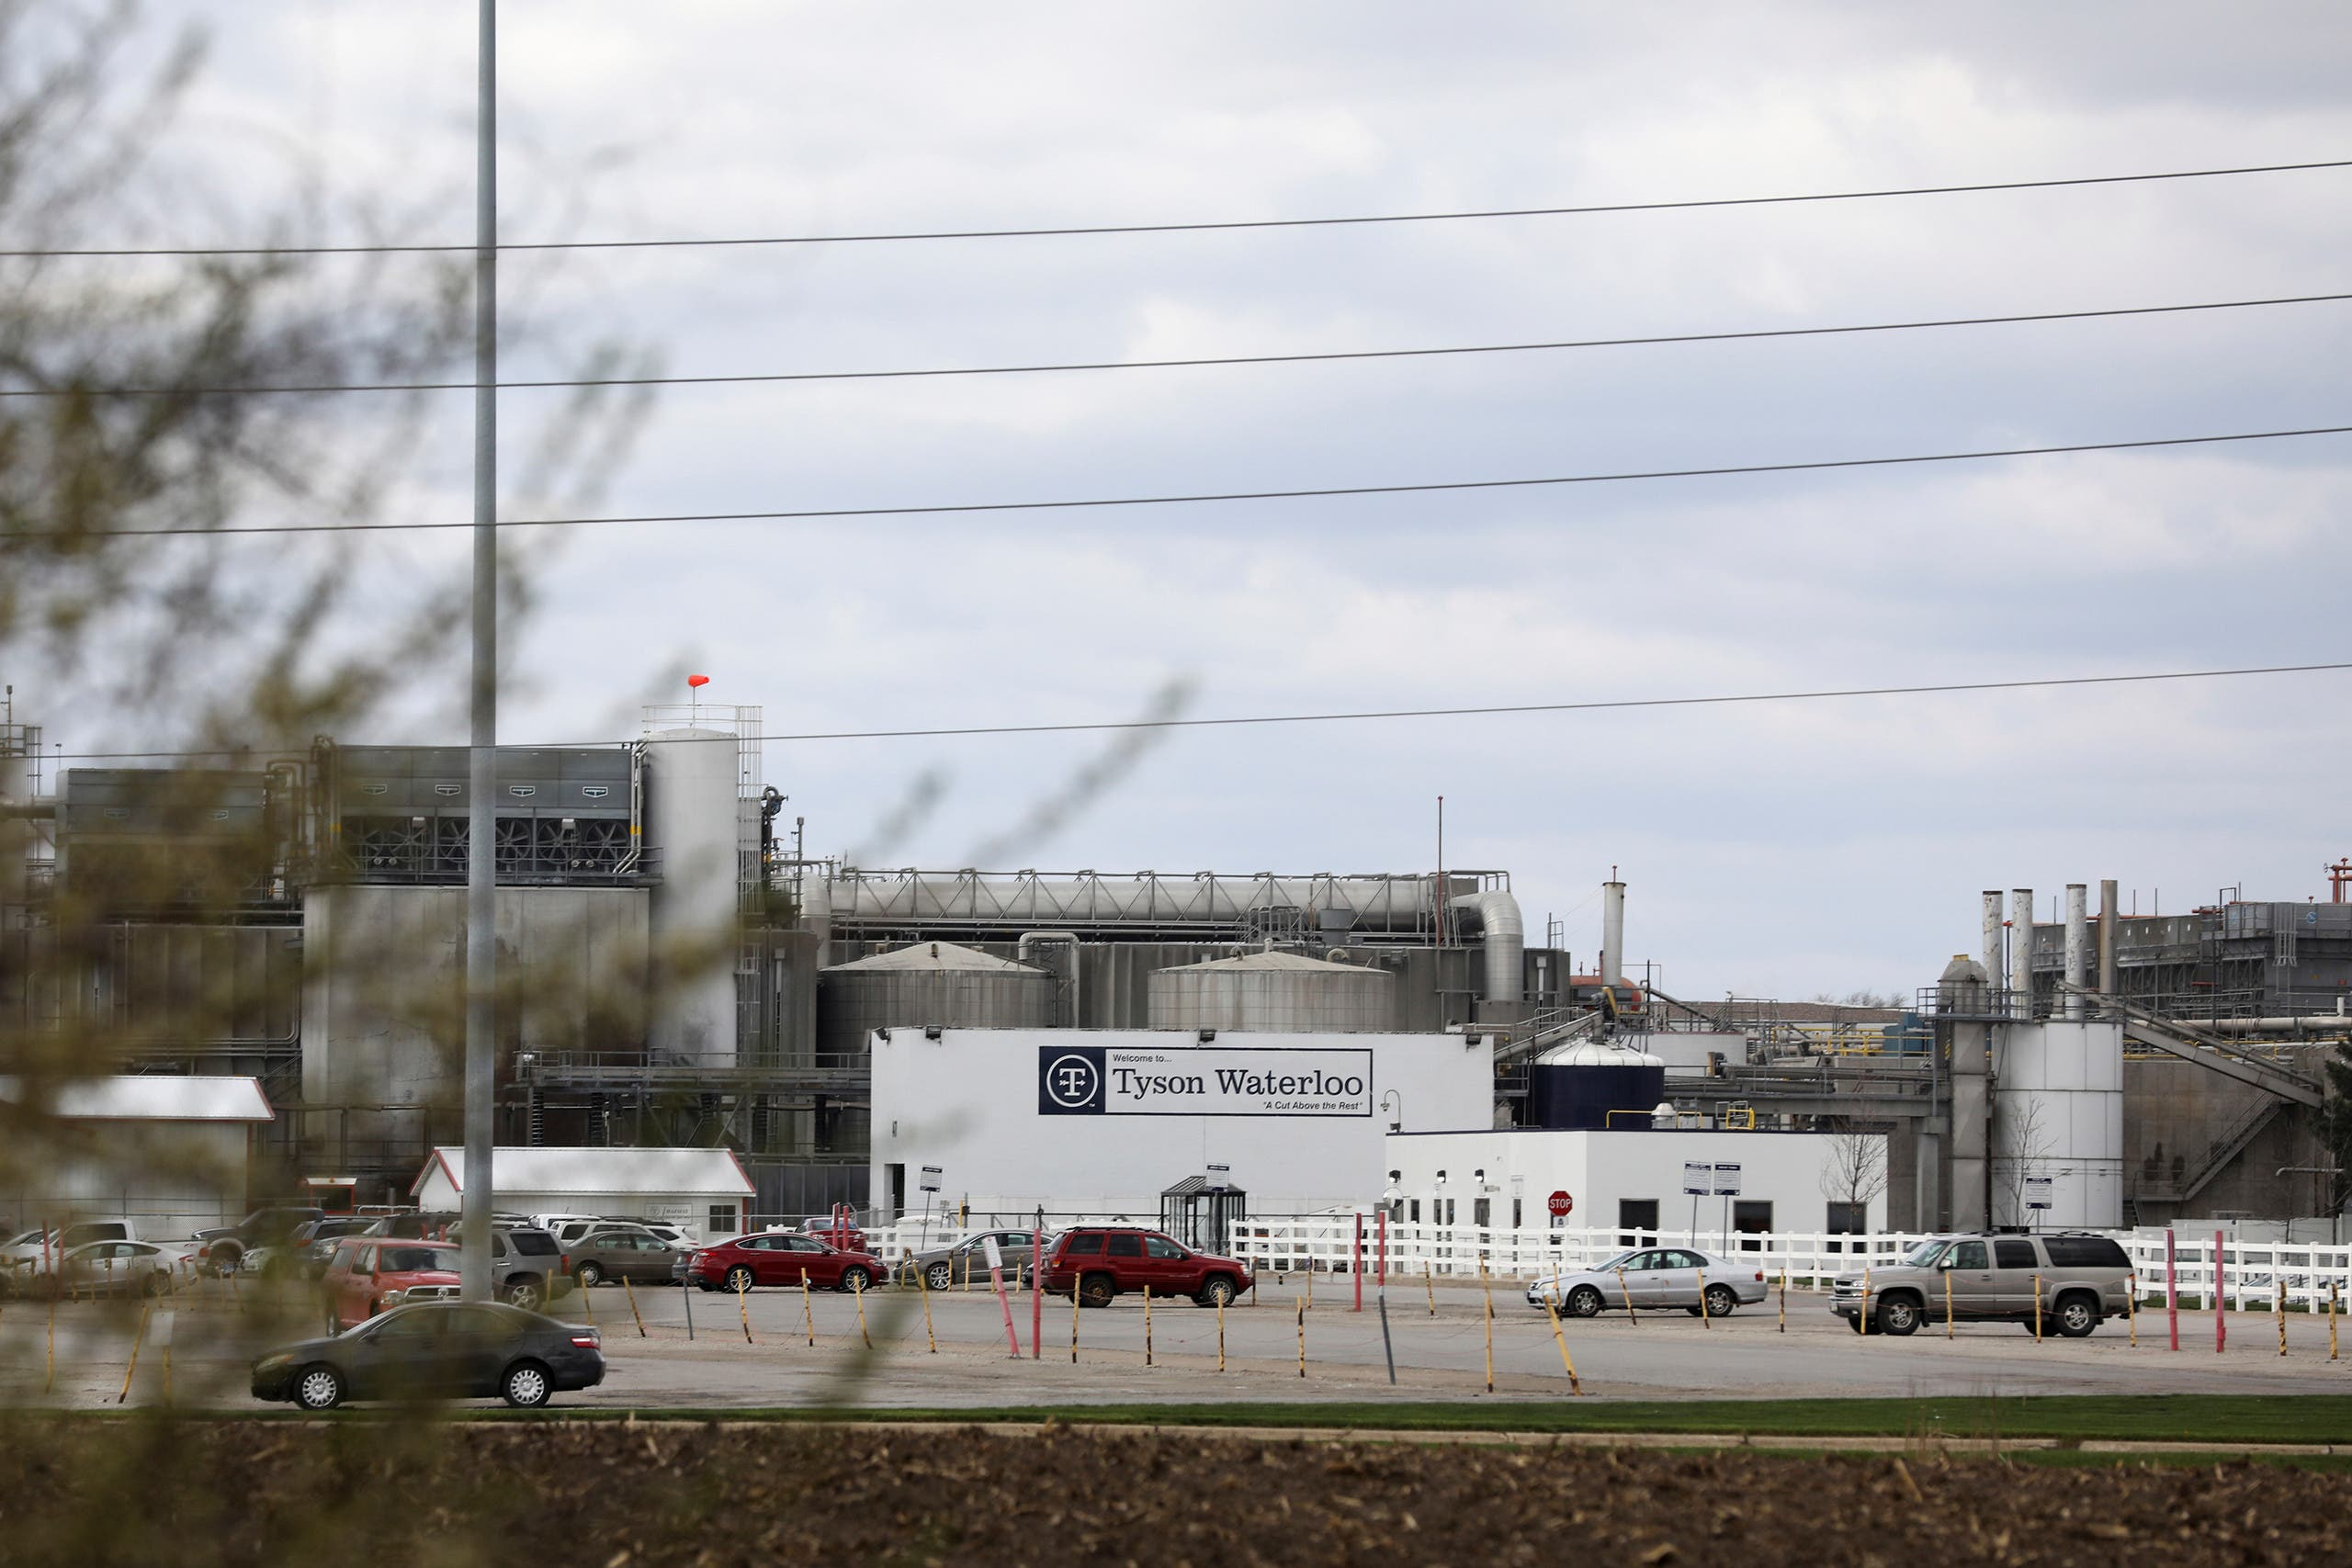 A Tyson Foods pork processing plant, temporarily closed due to an outbreak of the coronavirus disease (COVID-19), is seen in Waterloo, Iowa, US April 29, 2020. (Reuters)